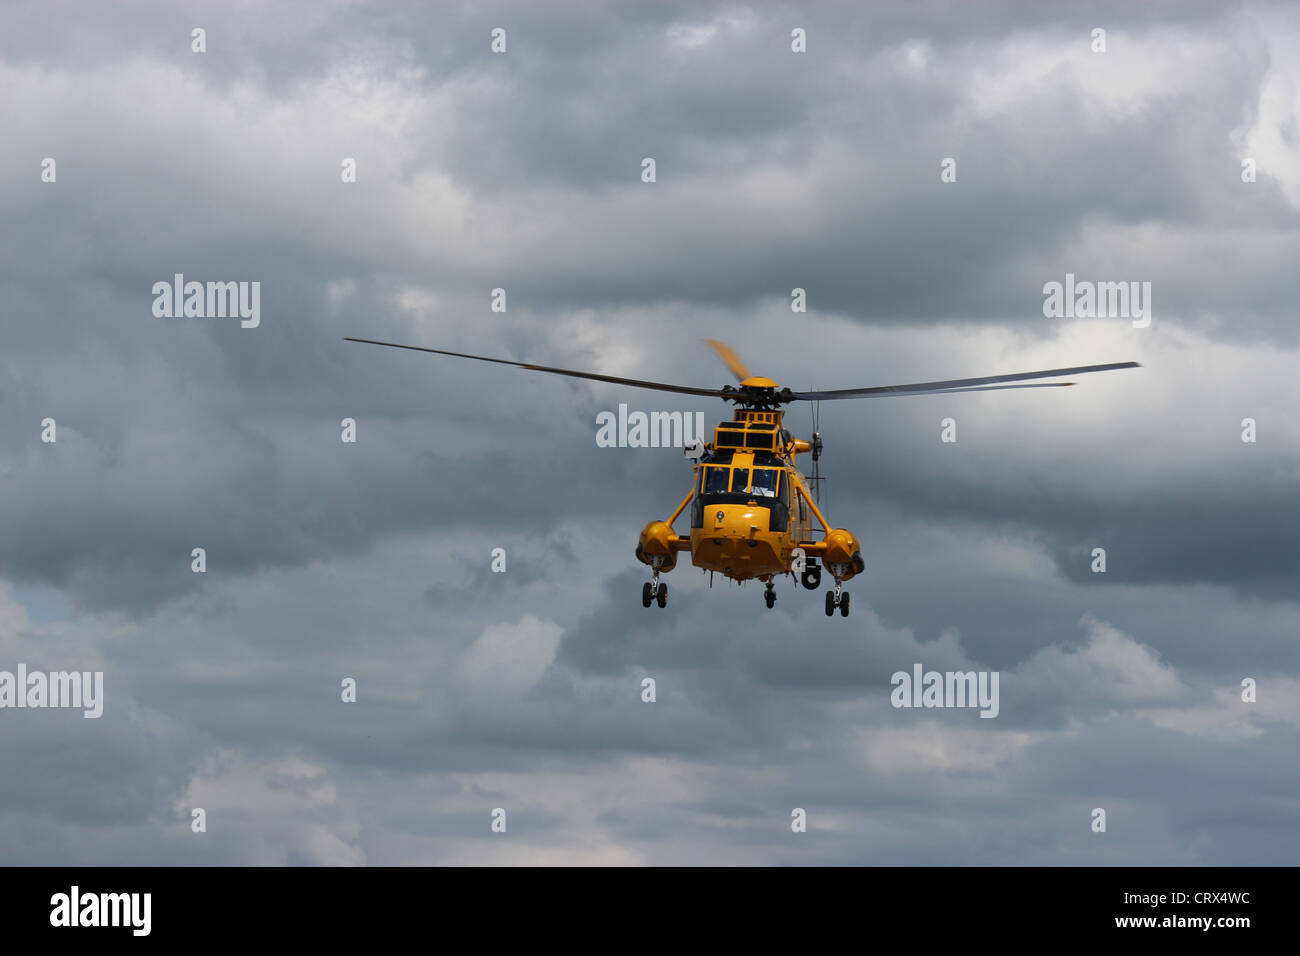 Search and rescue seaking low fly by - Stock Image